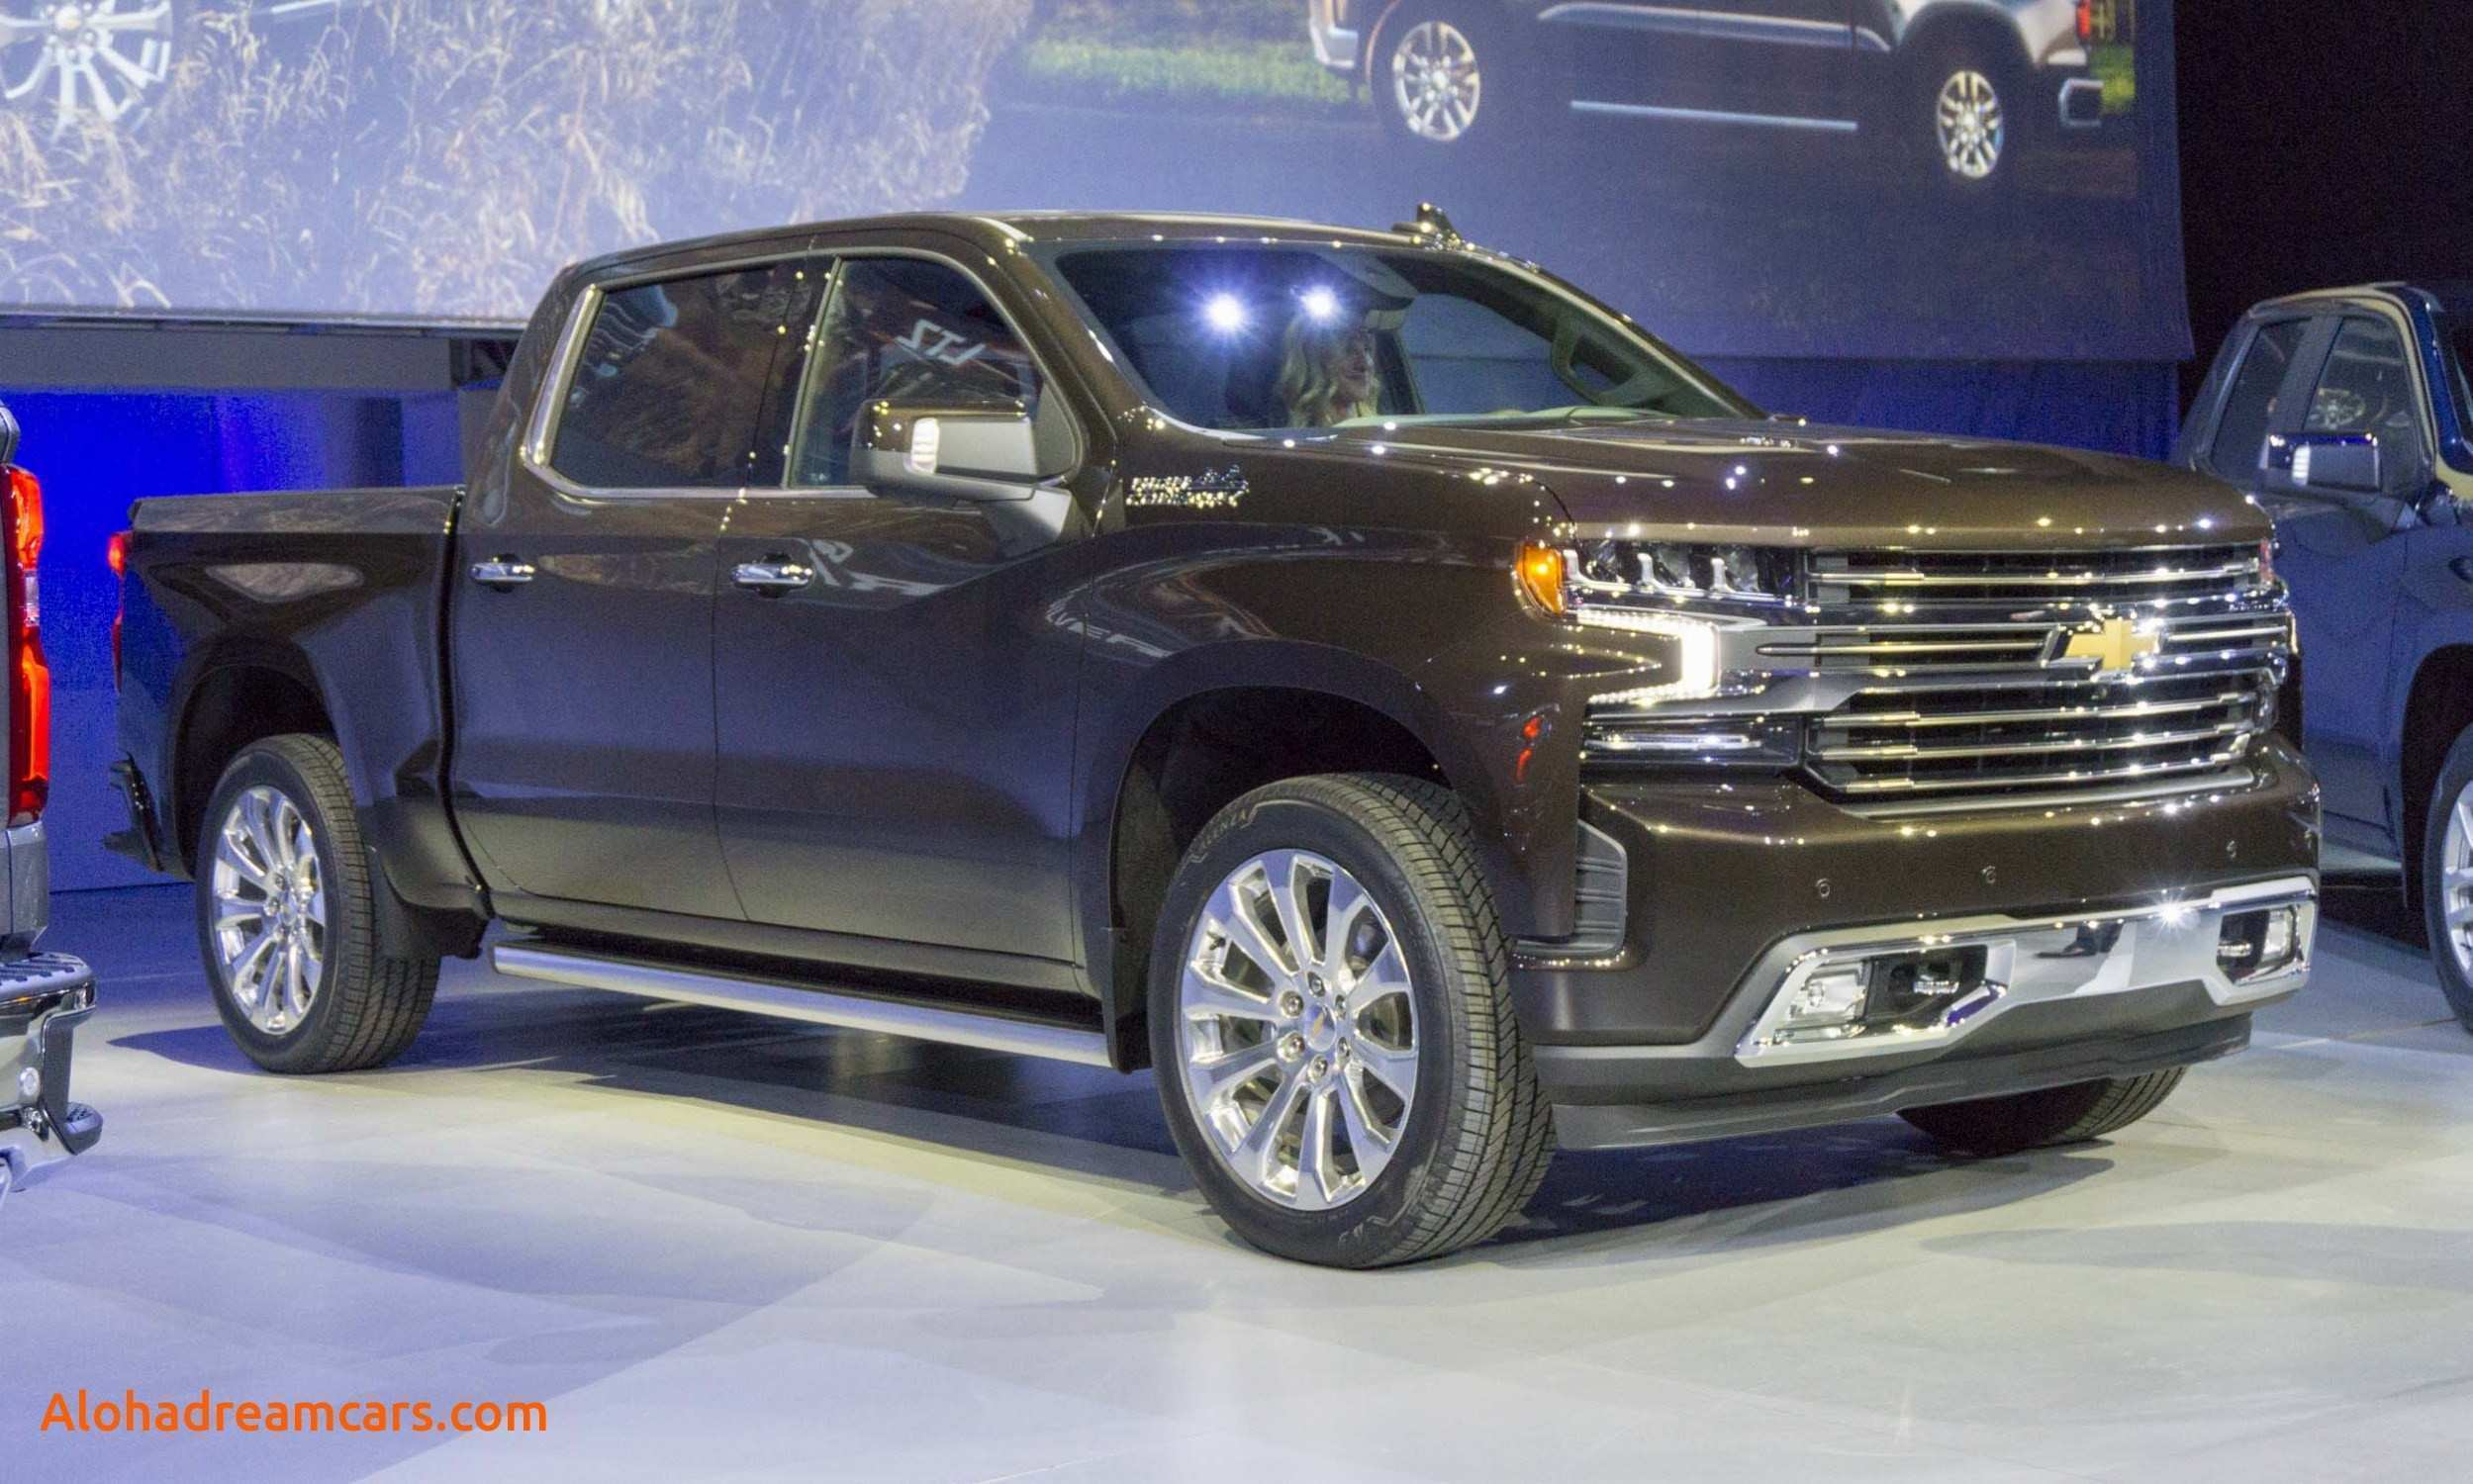 18 New 2019 Chevrolet High Country Price Reviews by 2019 Chevrolet High Country Price